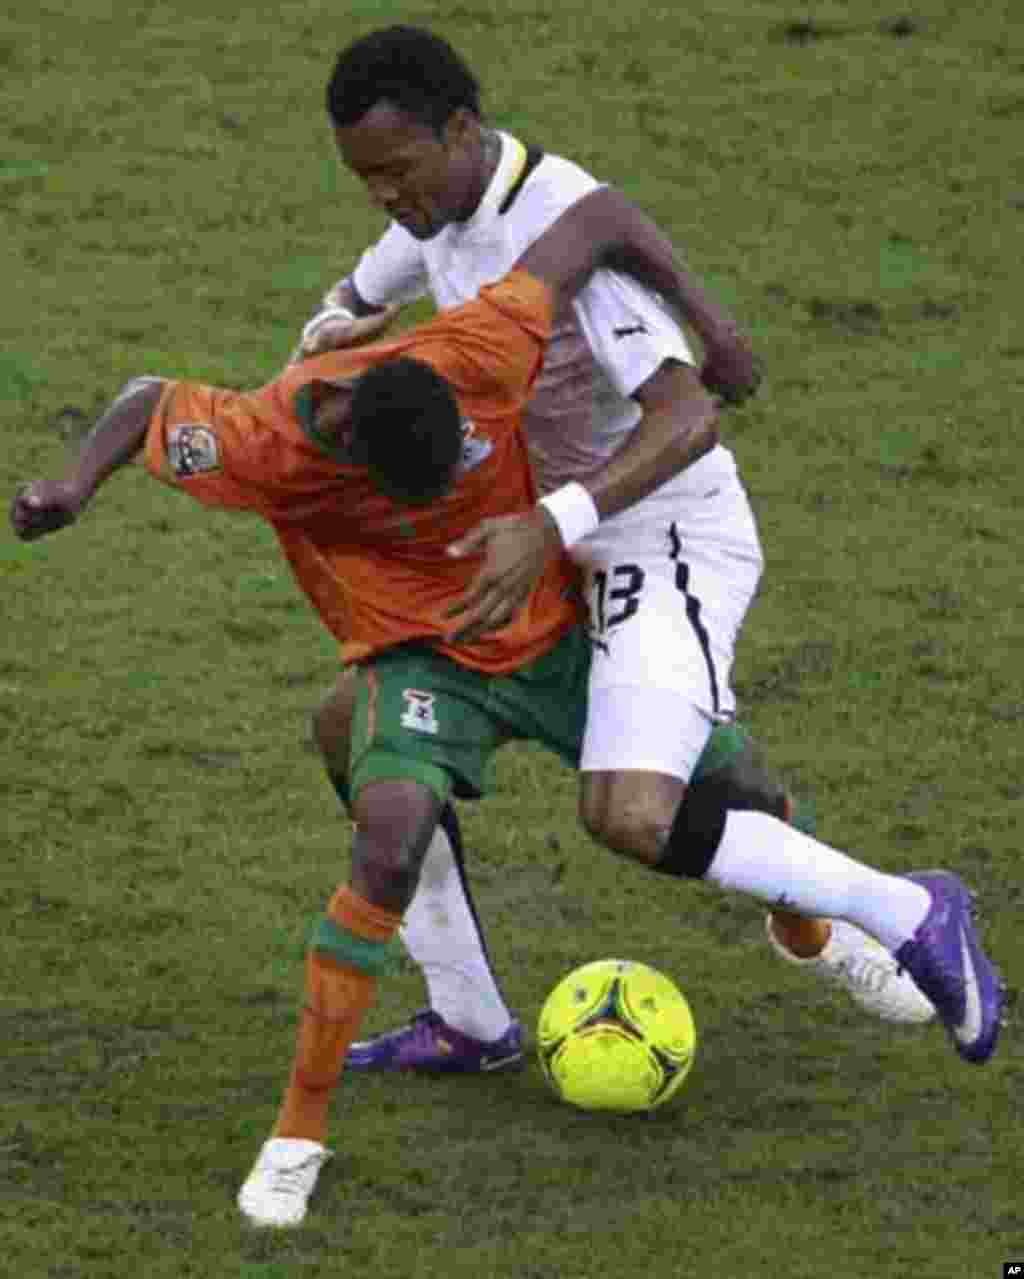 "Jordan Ayew of Ghana (R) fights for the ball with Rainford Kalaba of Zambia during their African Nations Cup semi-final soccer match at Estadio de Bata ""Bata Stadium"" in Bata February 8, 2012."